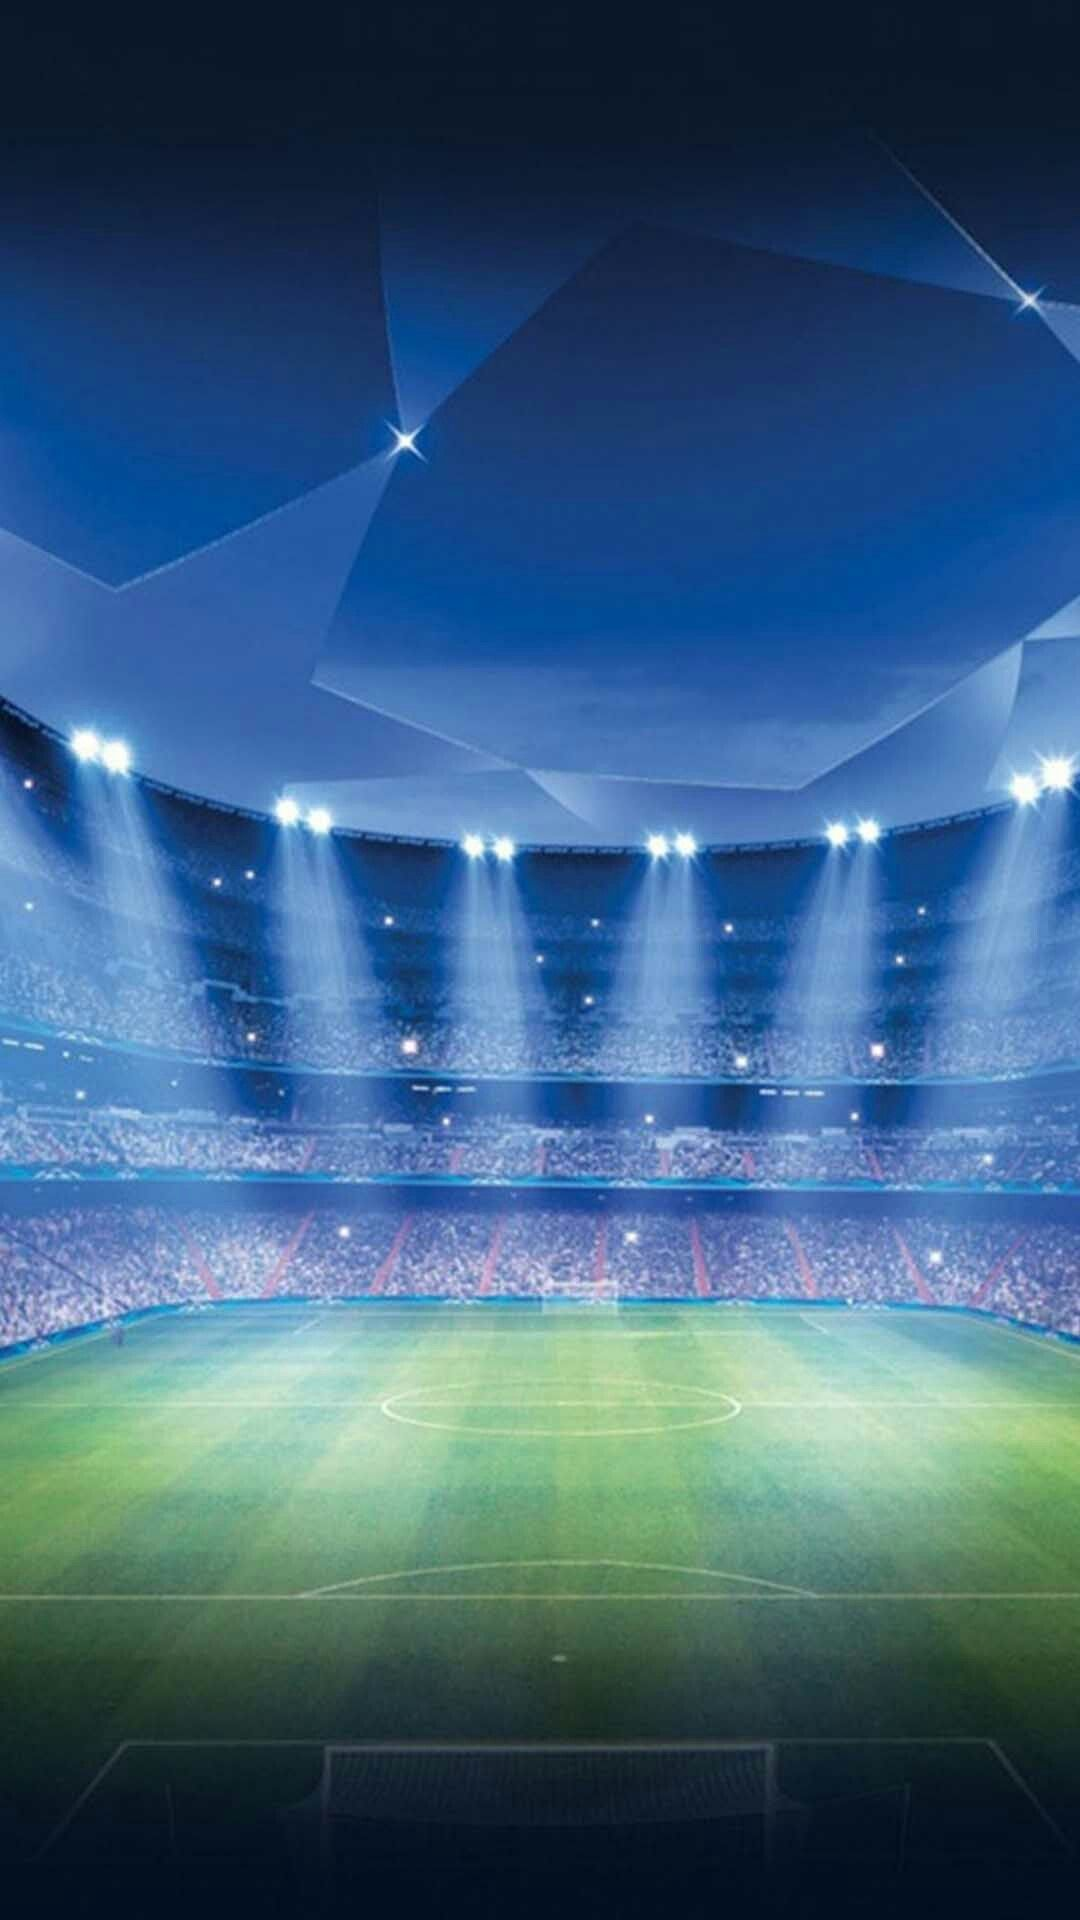 1080x1920 Soccer Stadium Wallpaper Stadium Wallpaper